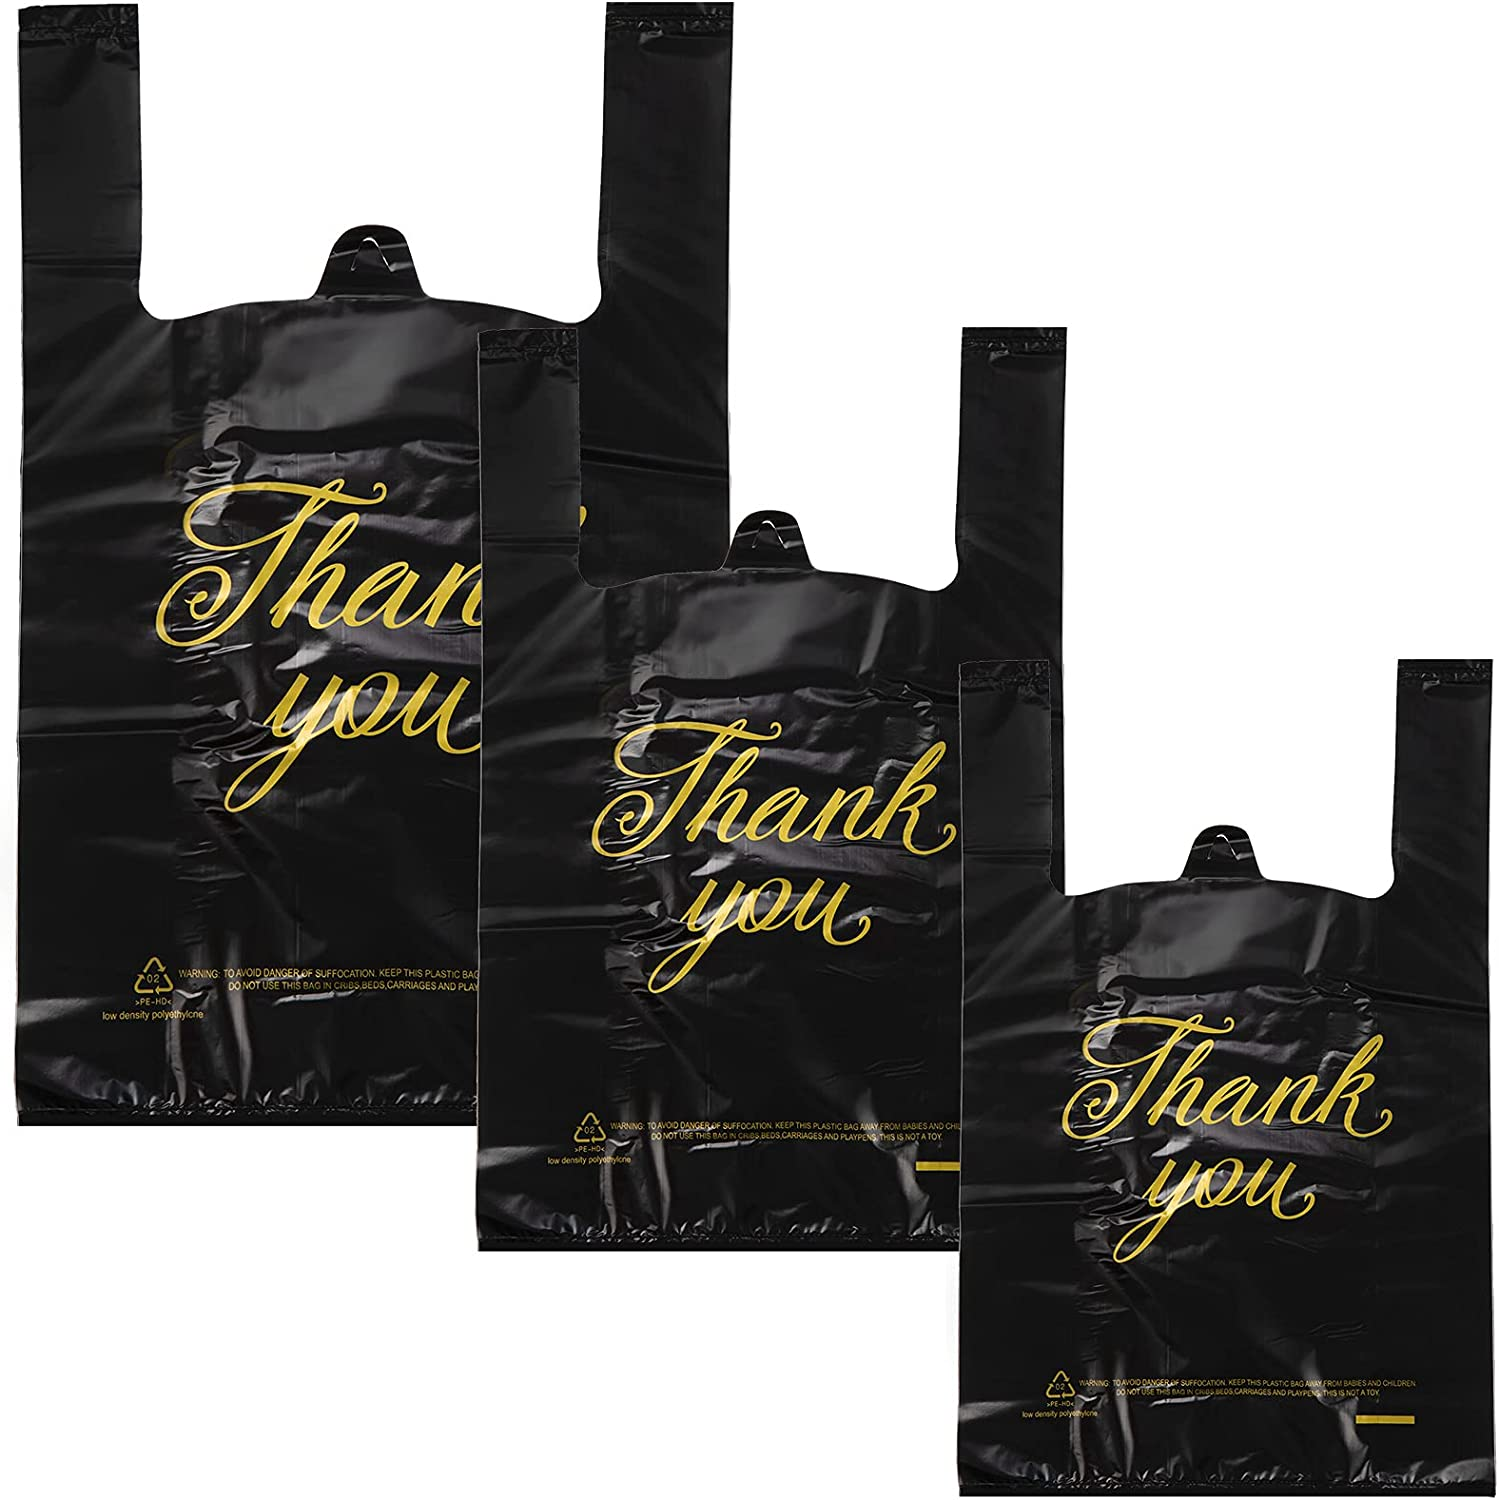 200 Pieces Thank Genuine Free Shipping You Shopping Bags in 16.5 Inch Sizes x 10 Dedication 3 1